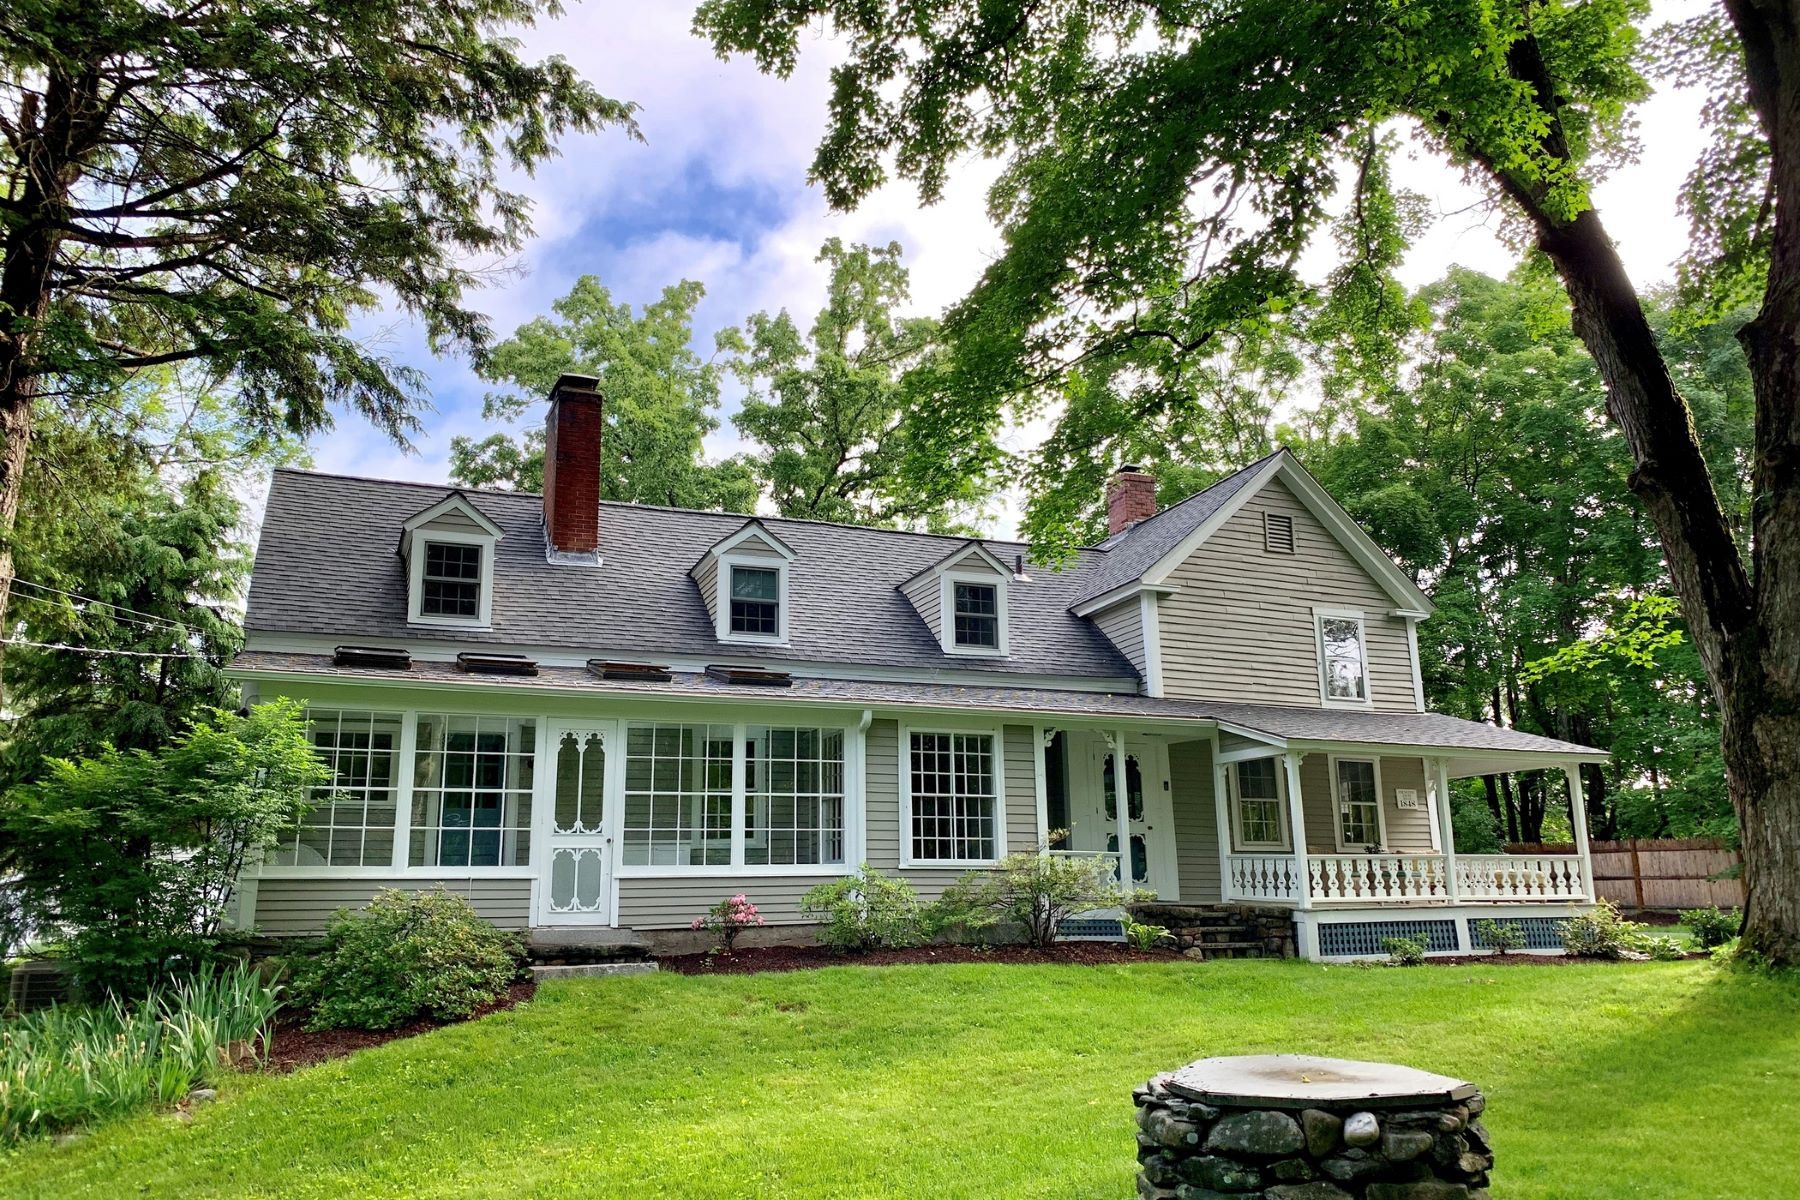 Single Family Homes for Sale at 40 Brook St Acton, Massachusetts 01720 United States